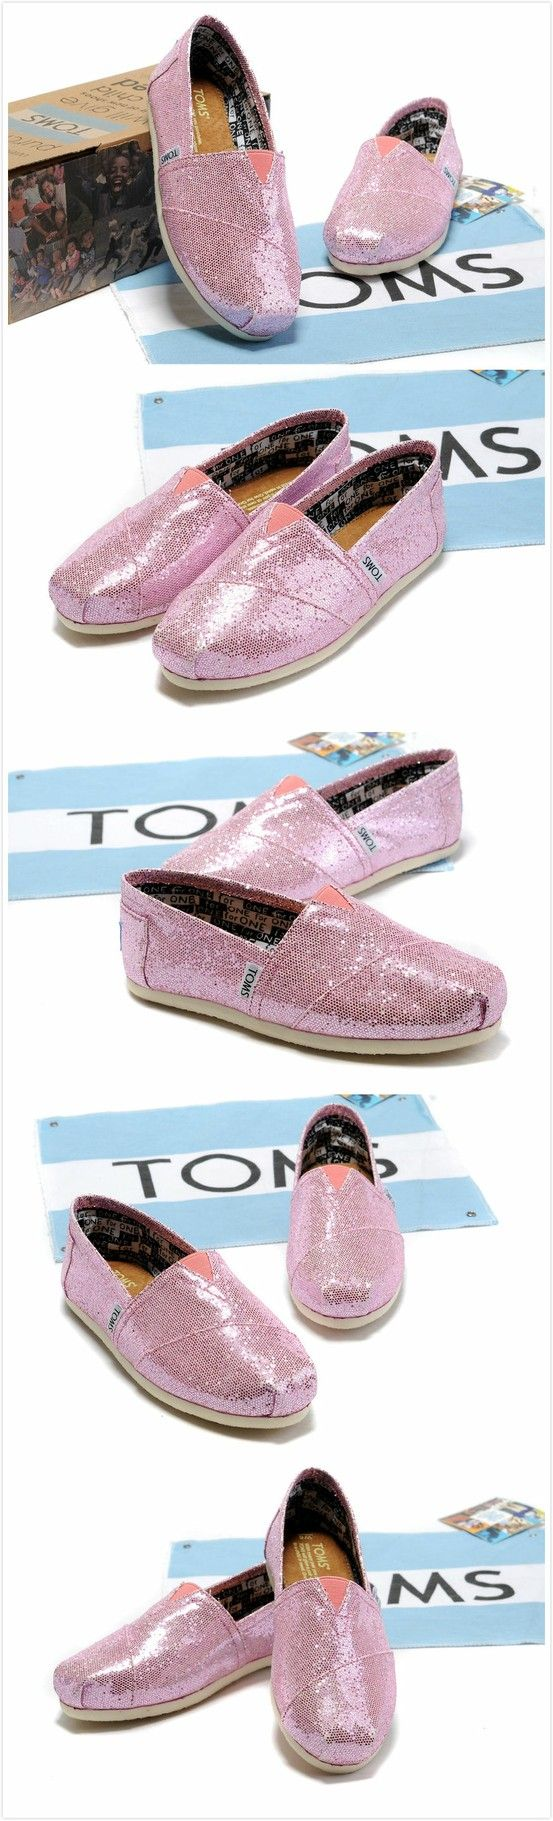 It's pretty cool (: / Toms Shoes OUTLET...$16.89! I love the philanthropic nature of the company and that they were made out of recycled material.